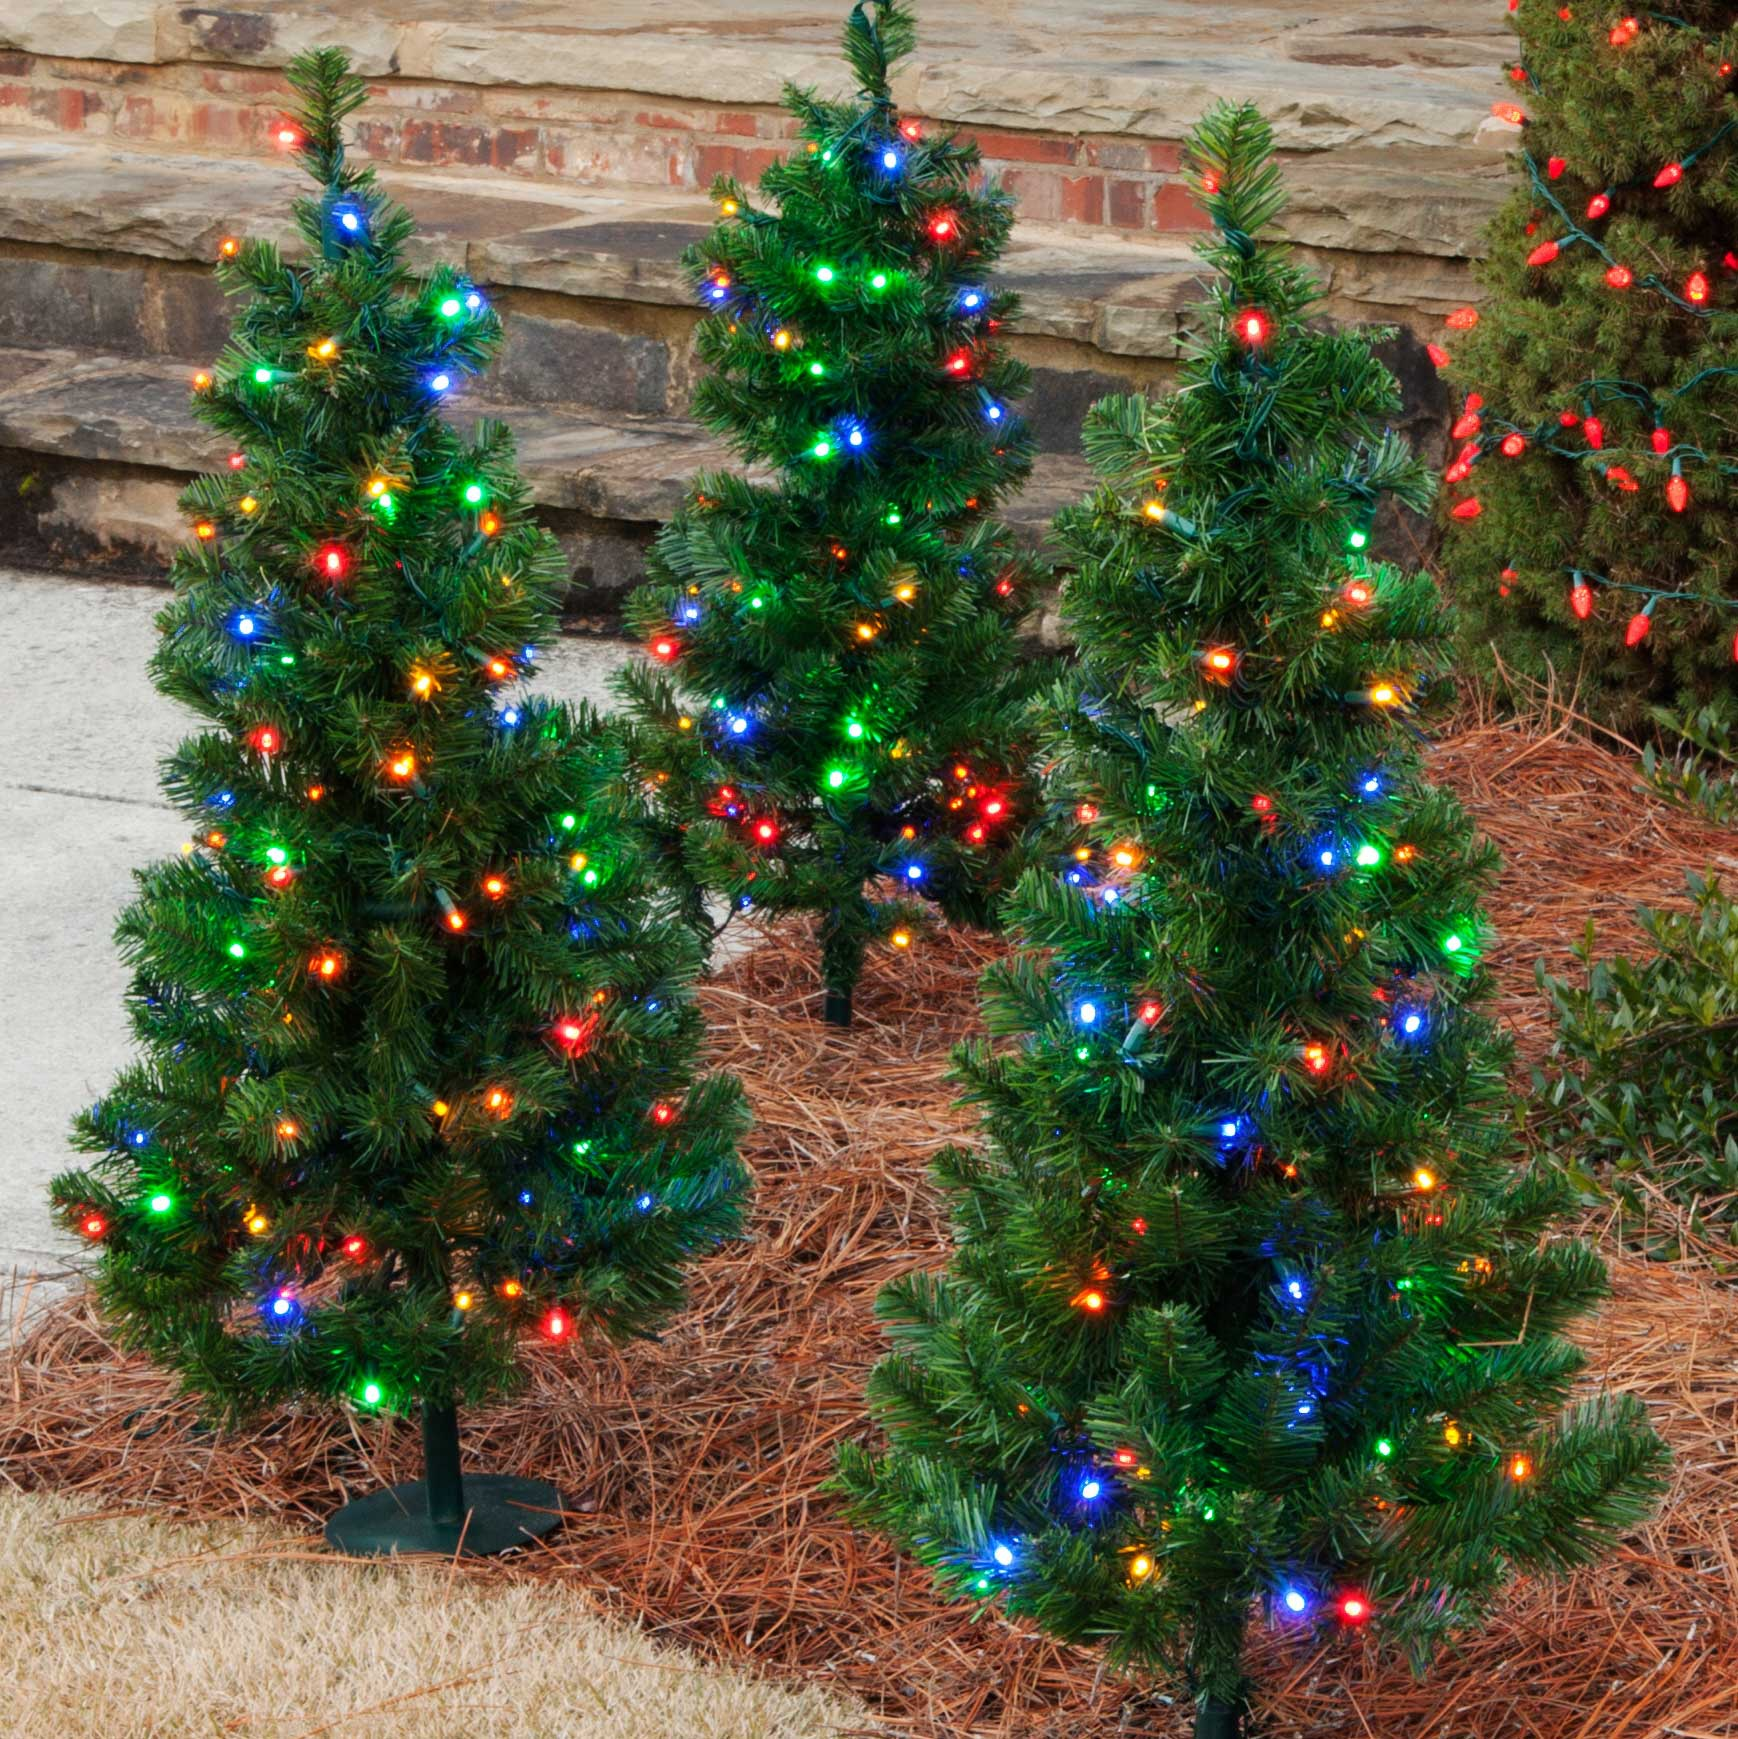 Outdoor Decorations - 3u0026#39; Walkway Pre-Lit Winchester Fir Tree, 100 Multicolored LED Lamps